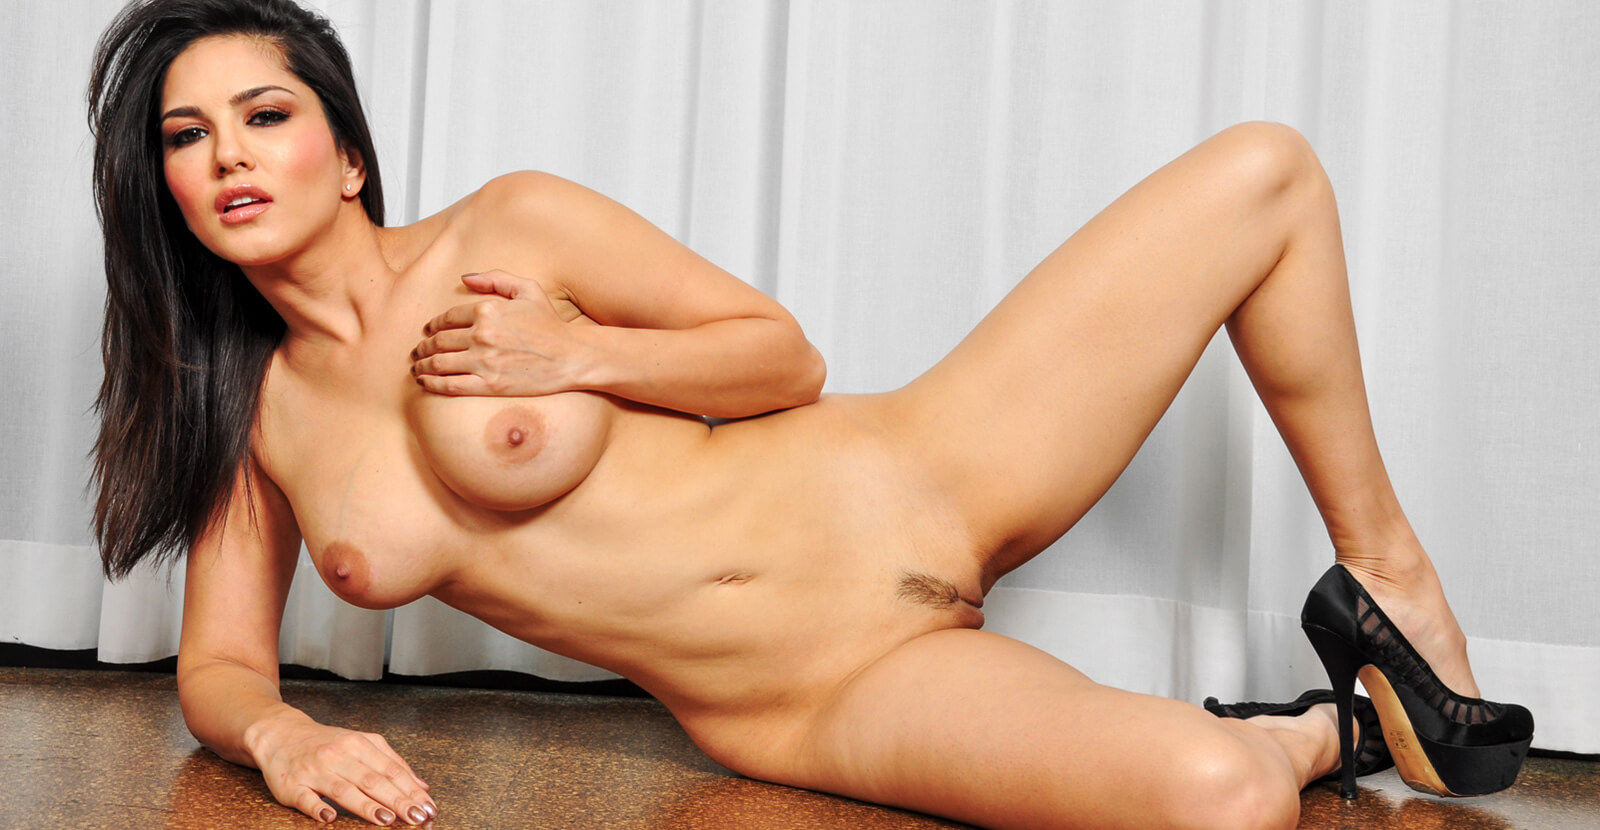 Hottest czech women naked